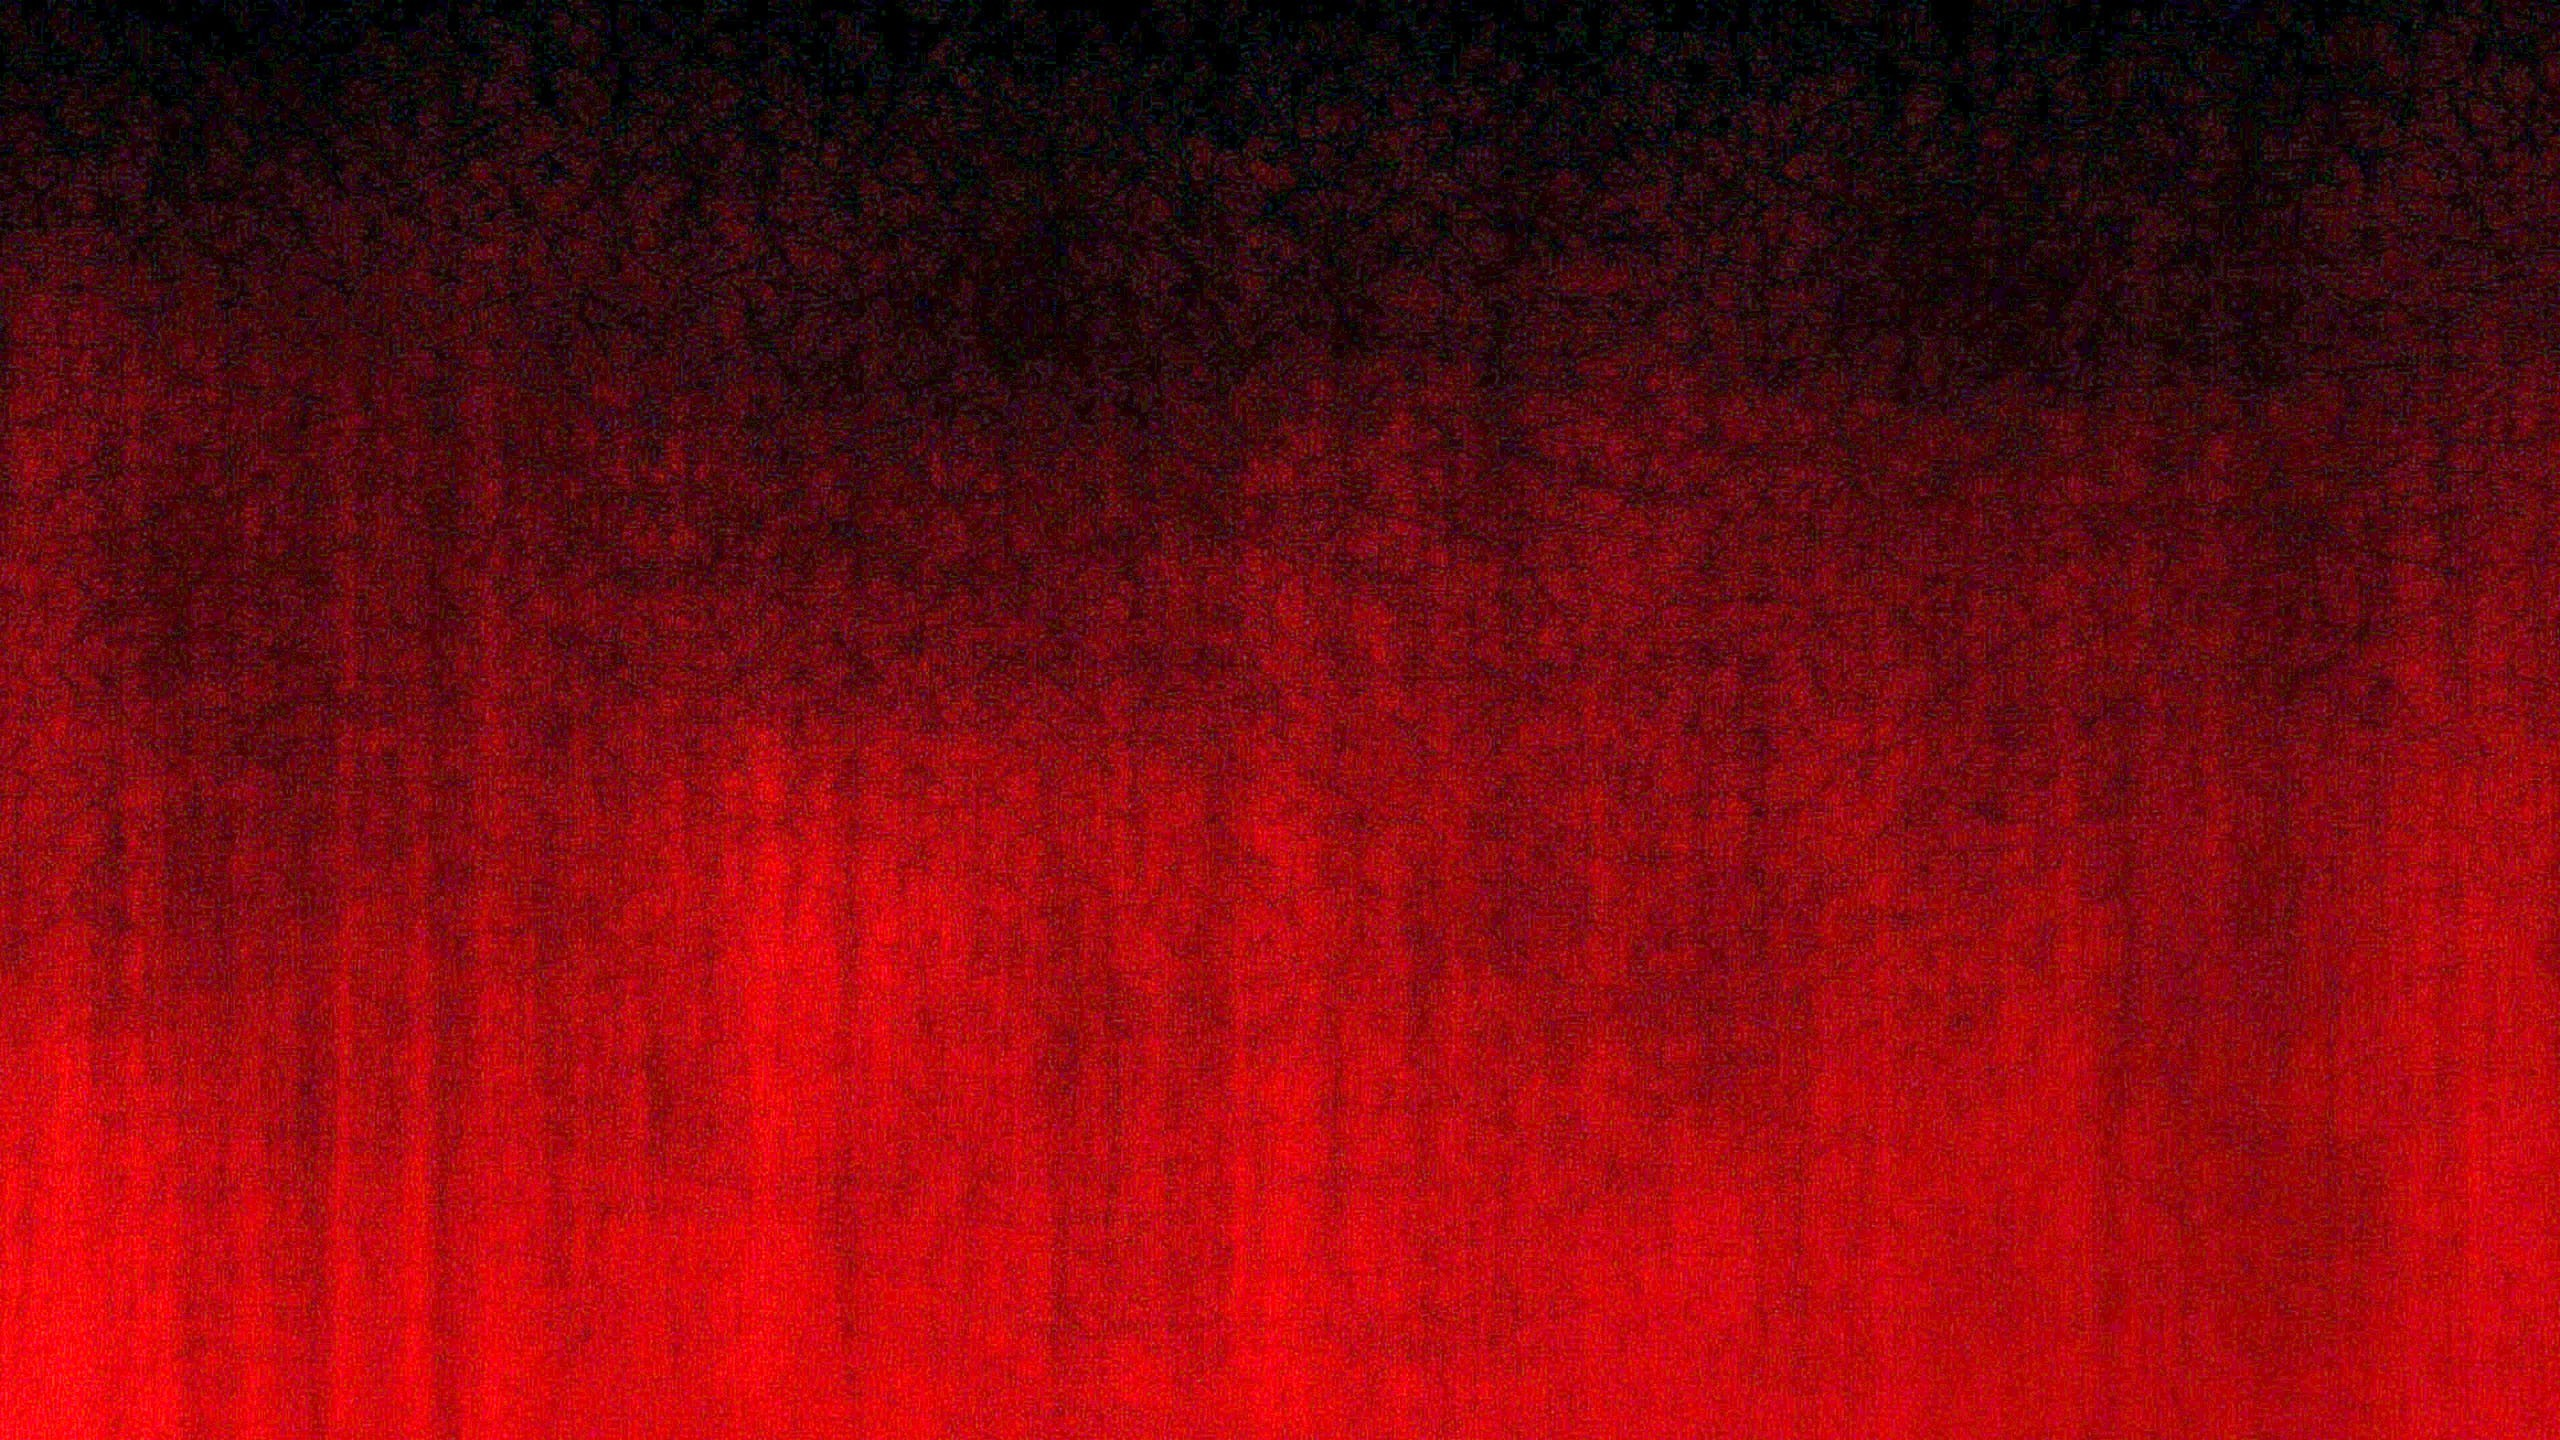 Res: 2560x1440, By Audrea Cabral PC.68: Red Grunge Wallpaper Wallpapers